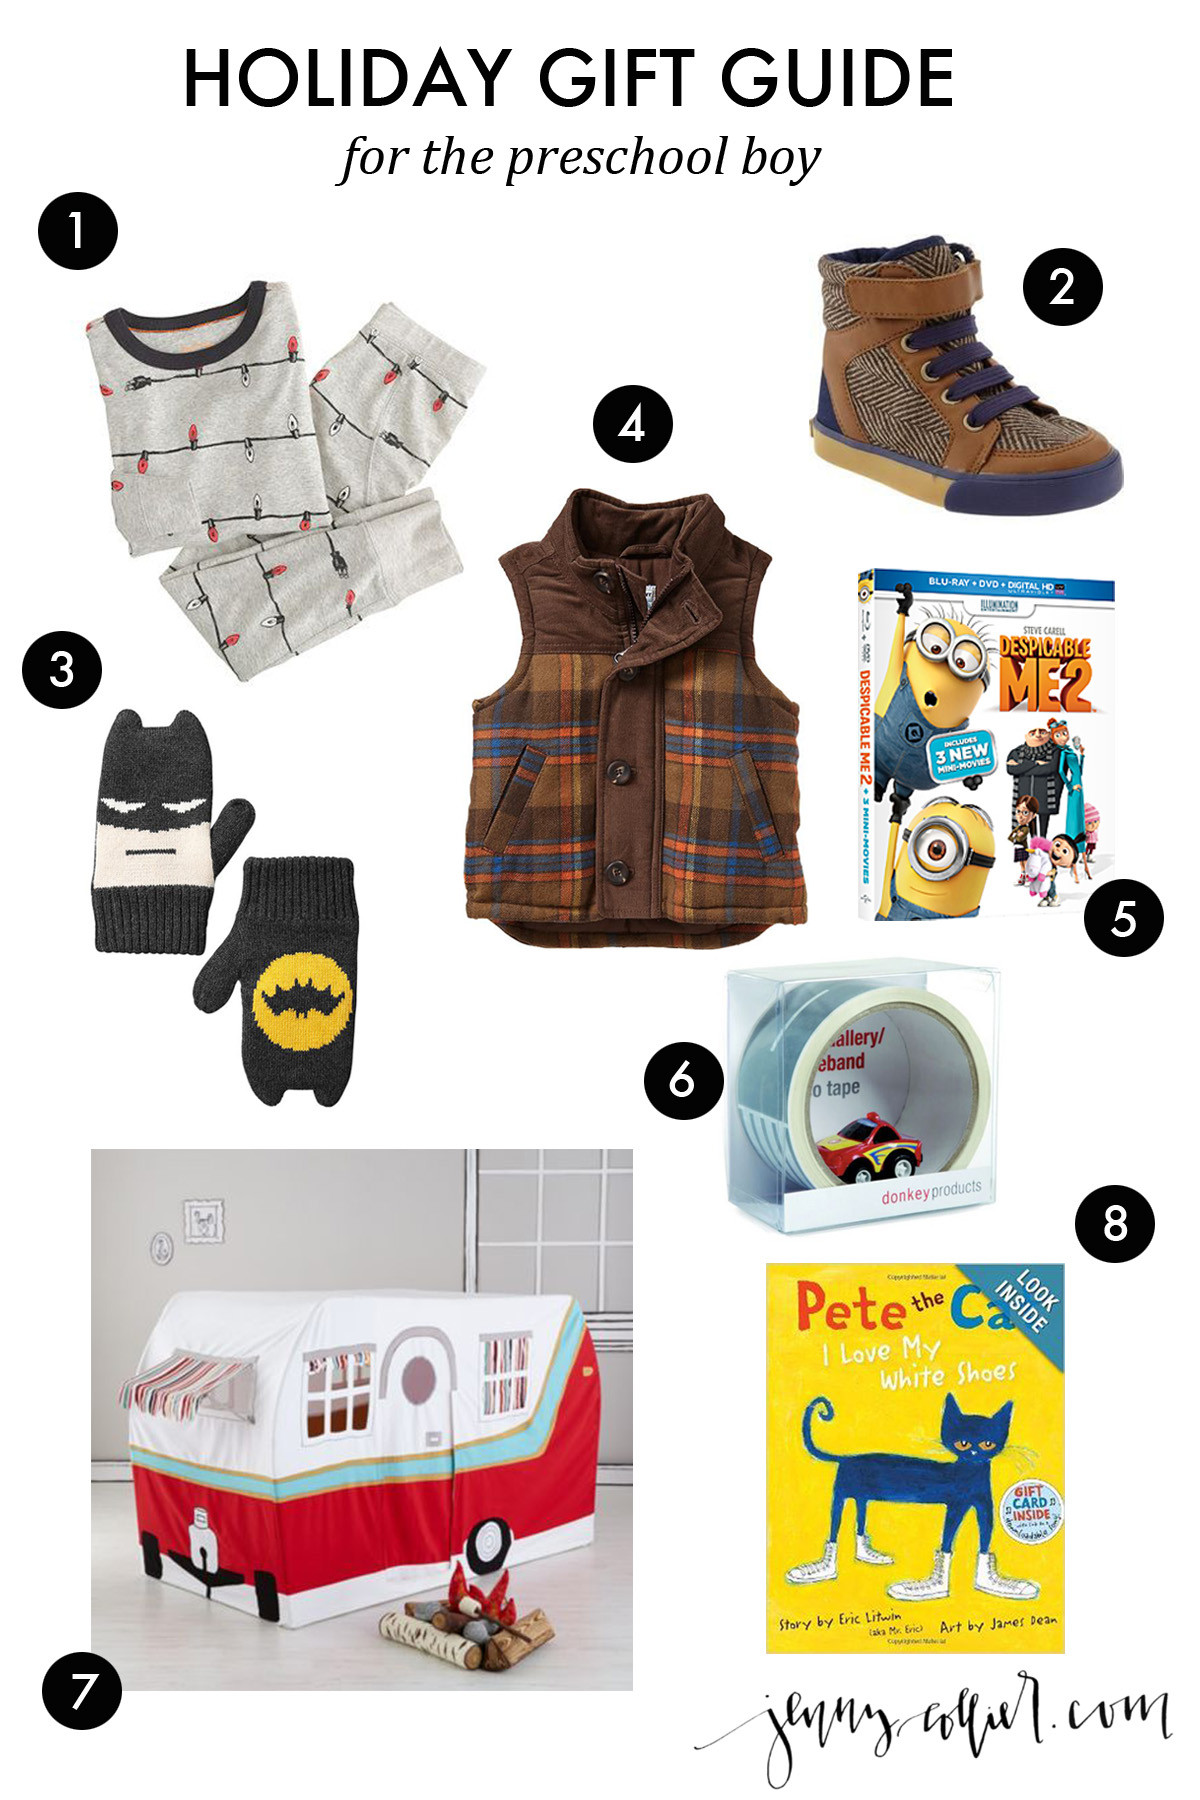 Best ideas about Gift Ideas For Toddler Boys . Save or Pin Holiday Gift Ideas for Boys jenny collier blog Now.